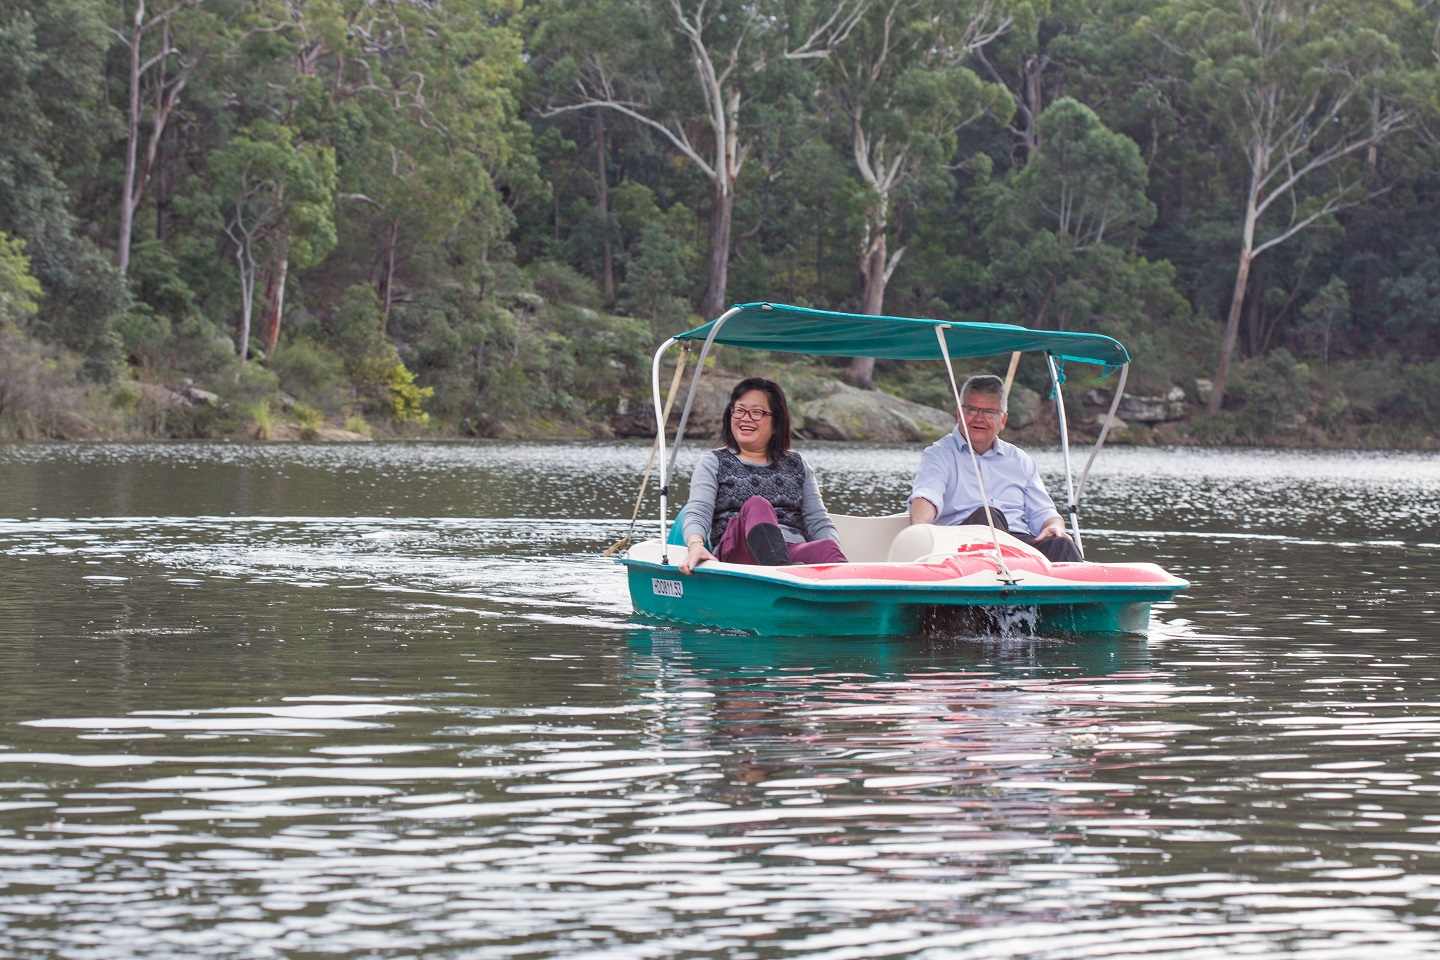 Lake Parramatta - Parramatta Rowboats Hire - Photo Katrina James